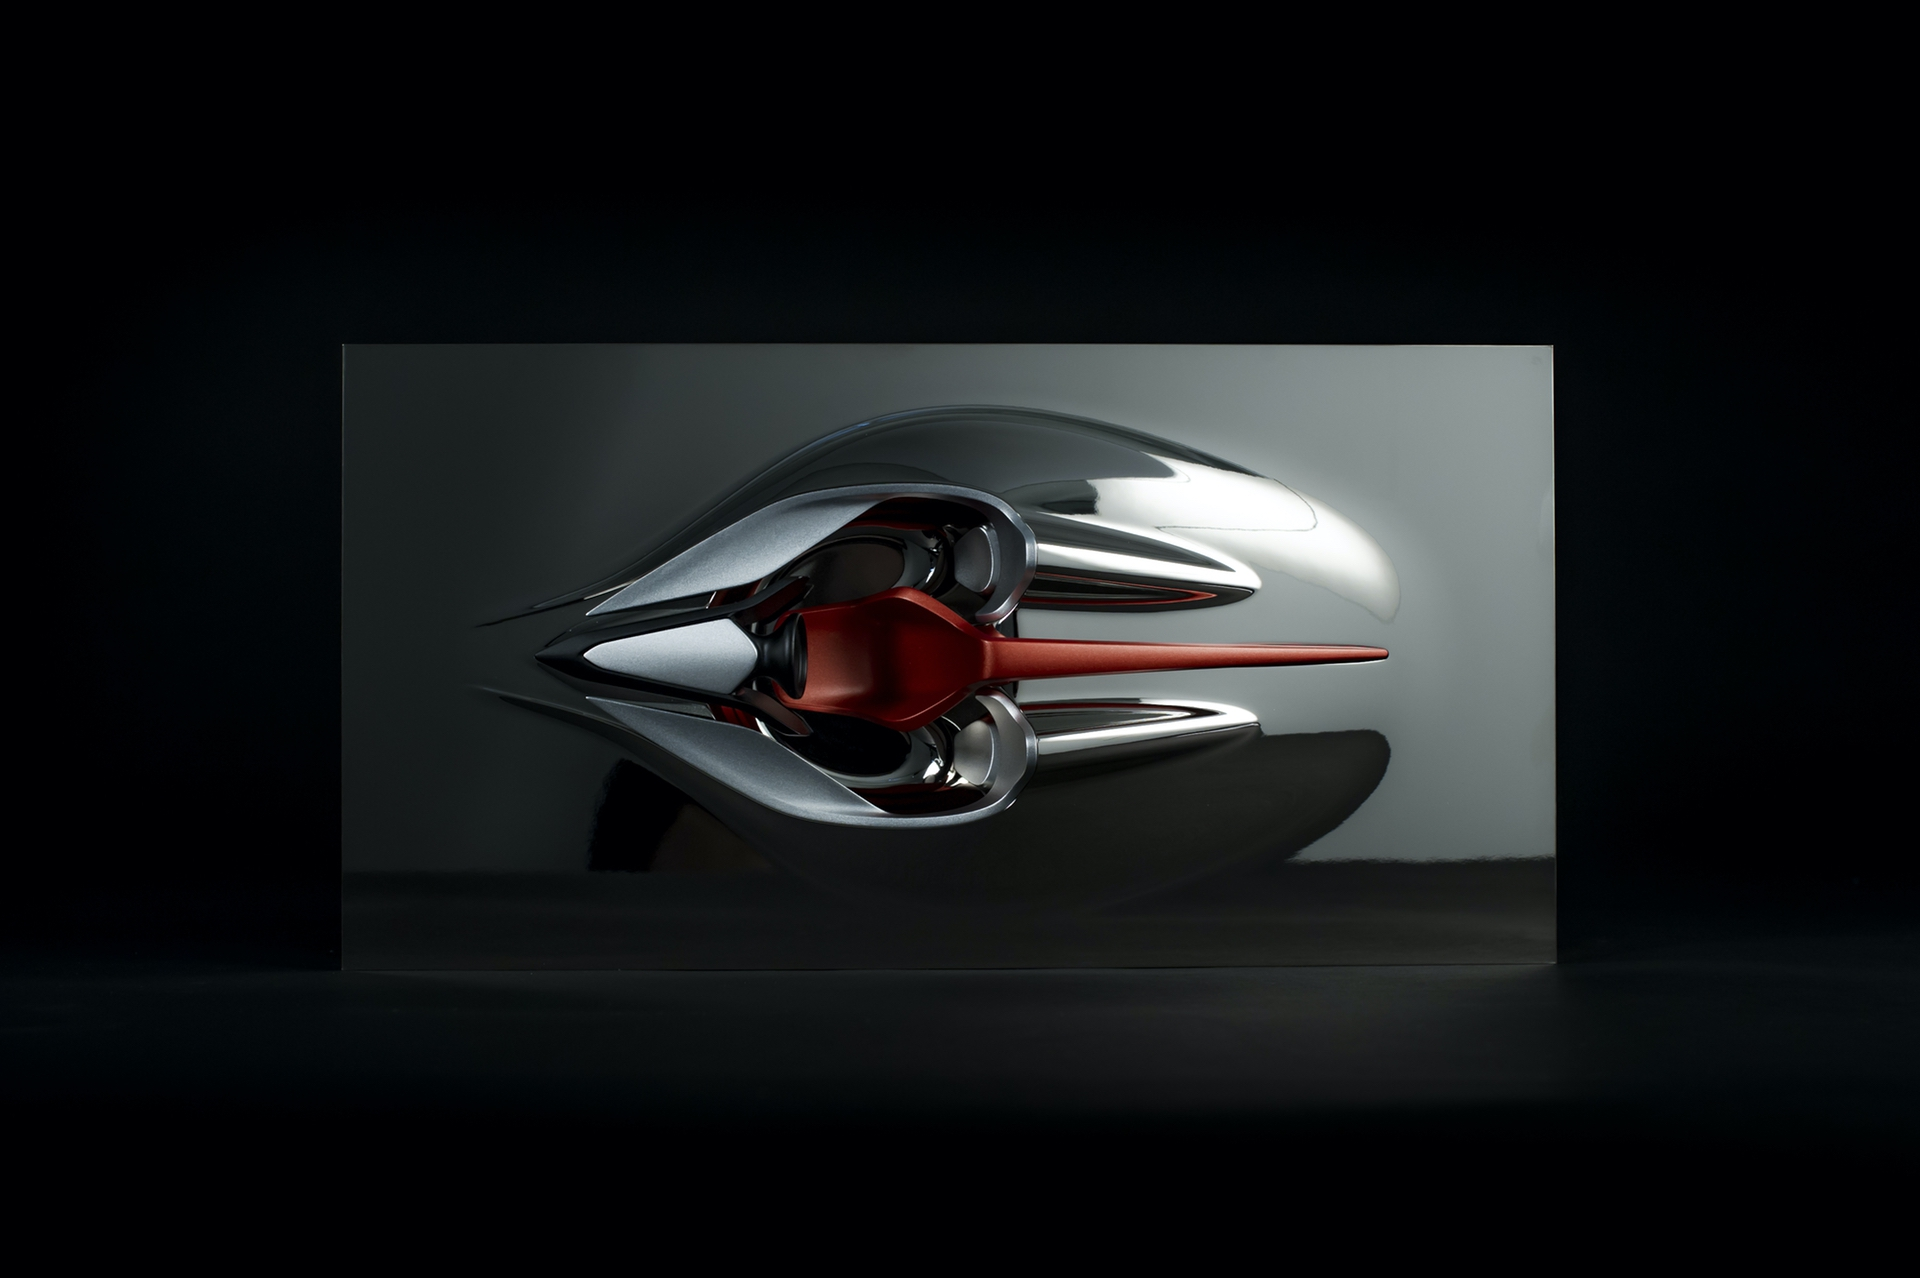 McLaren_BP23_Speed_Form_sculpture_0005